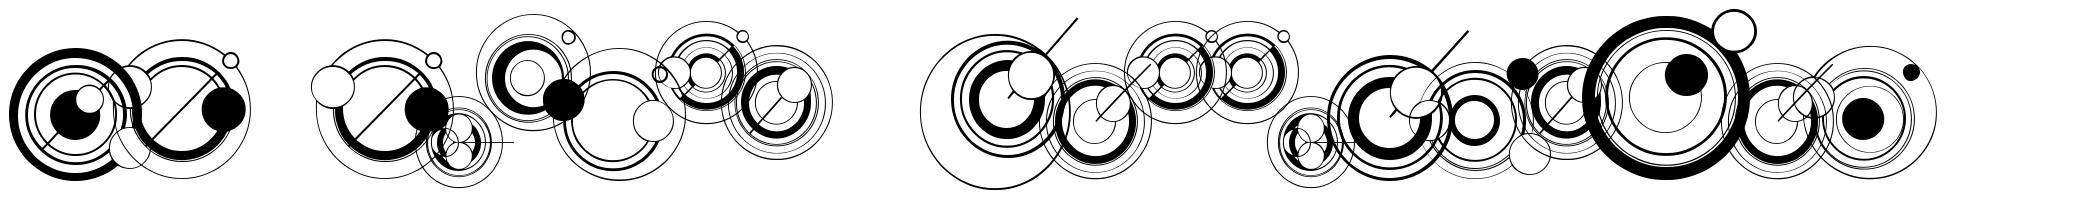 WS Simple Gallifreyan